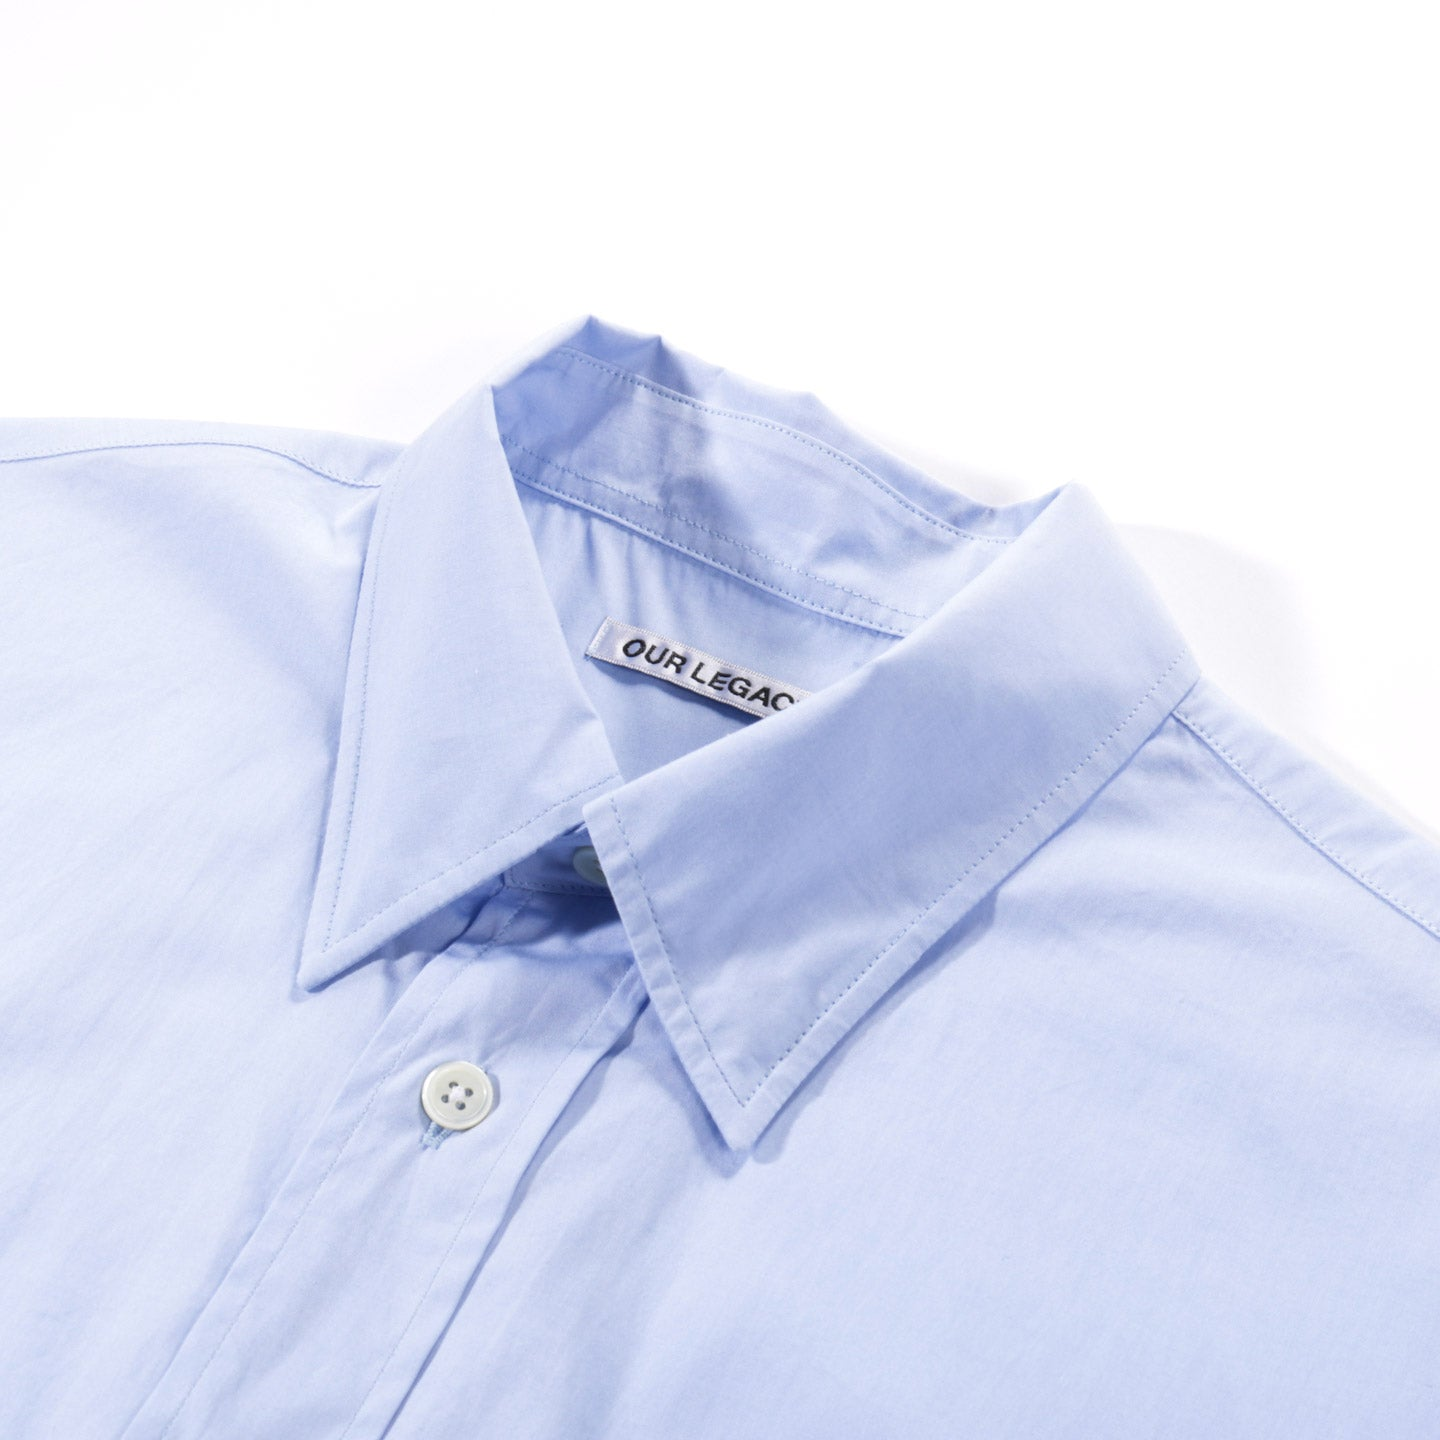 OUR LEGACY NEW BD SHIRT BUSINESS BLUE COTTON